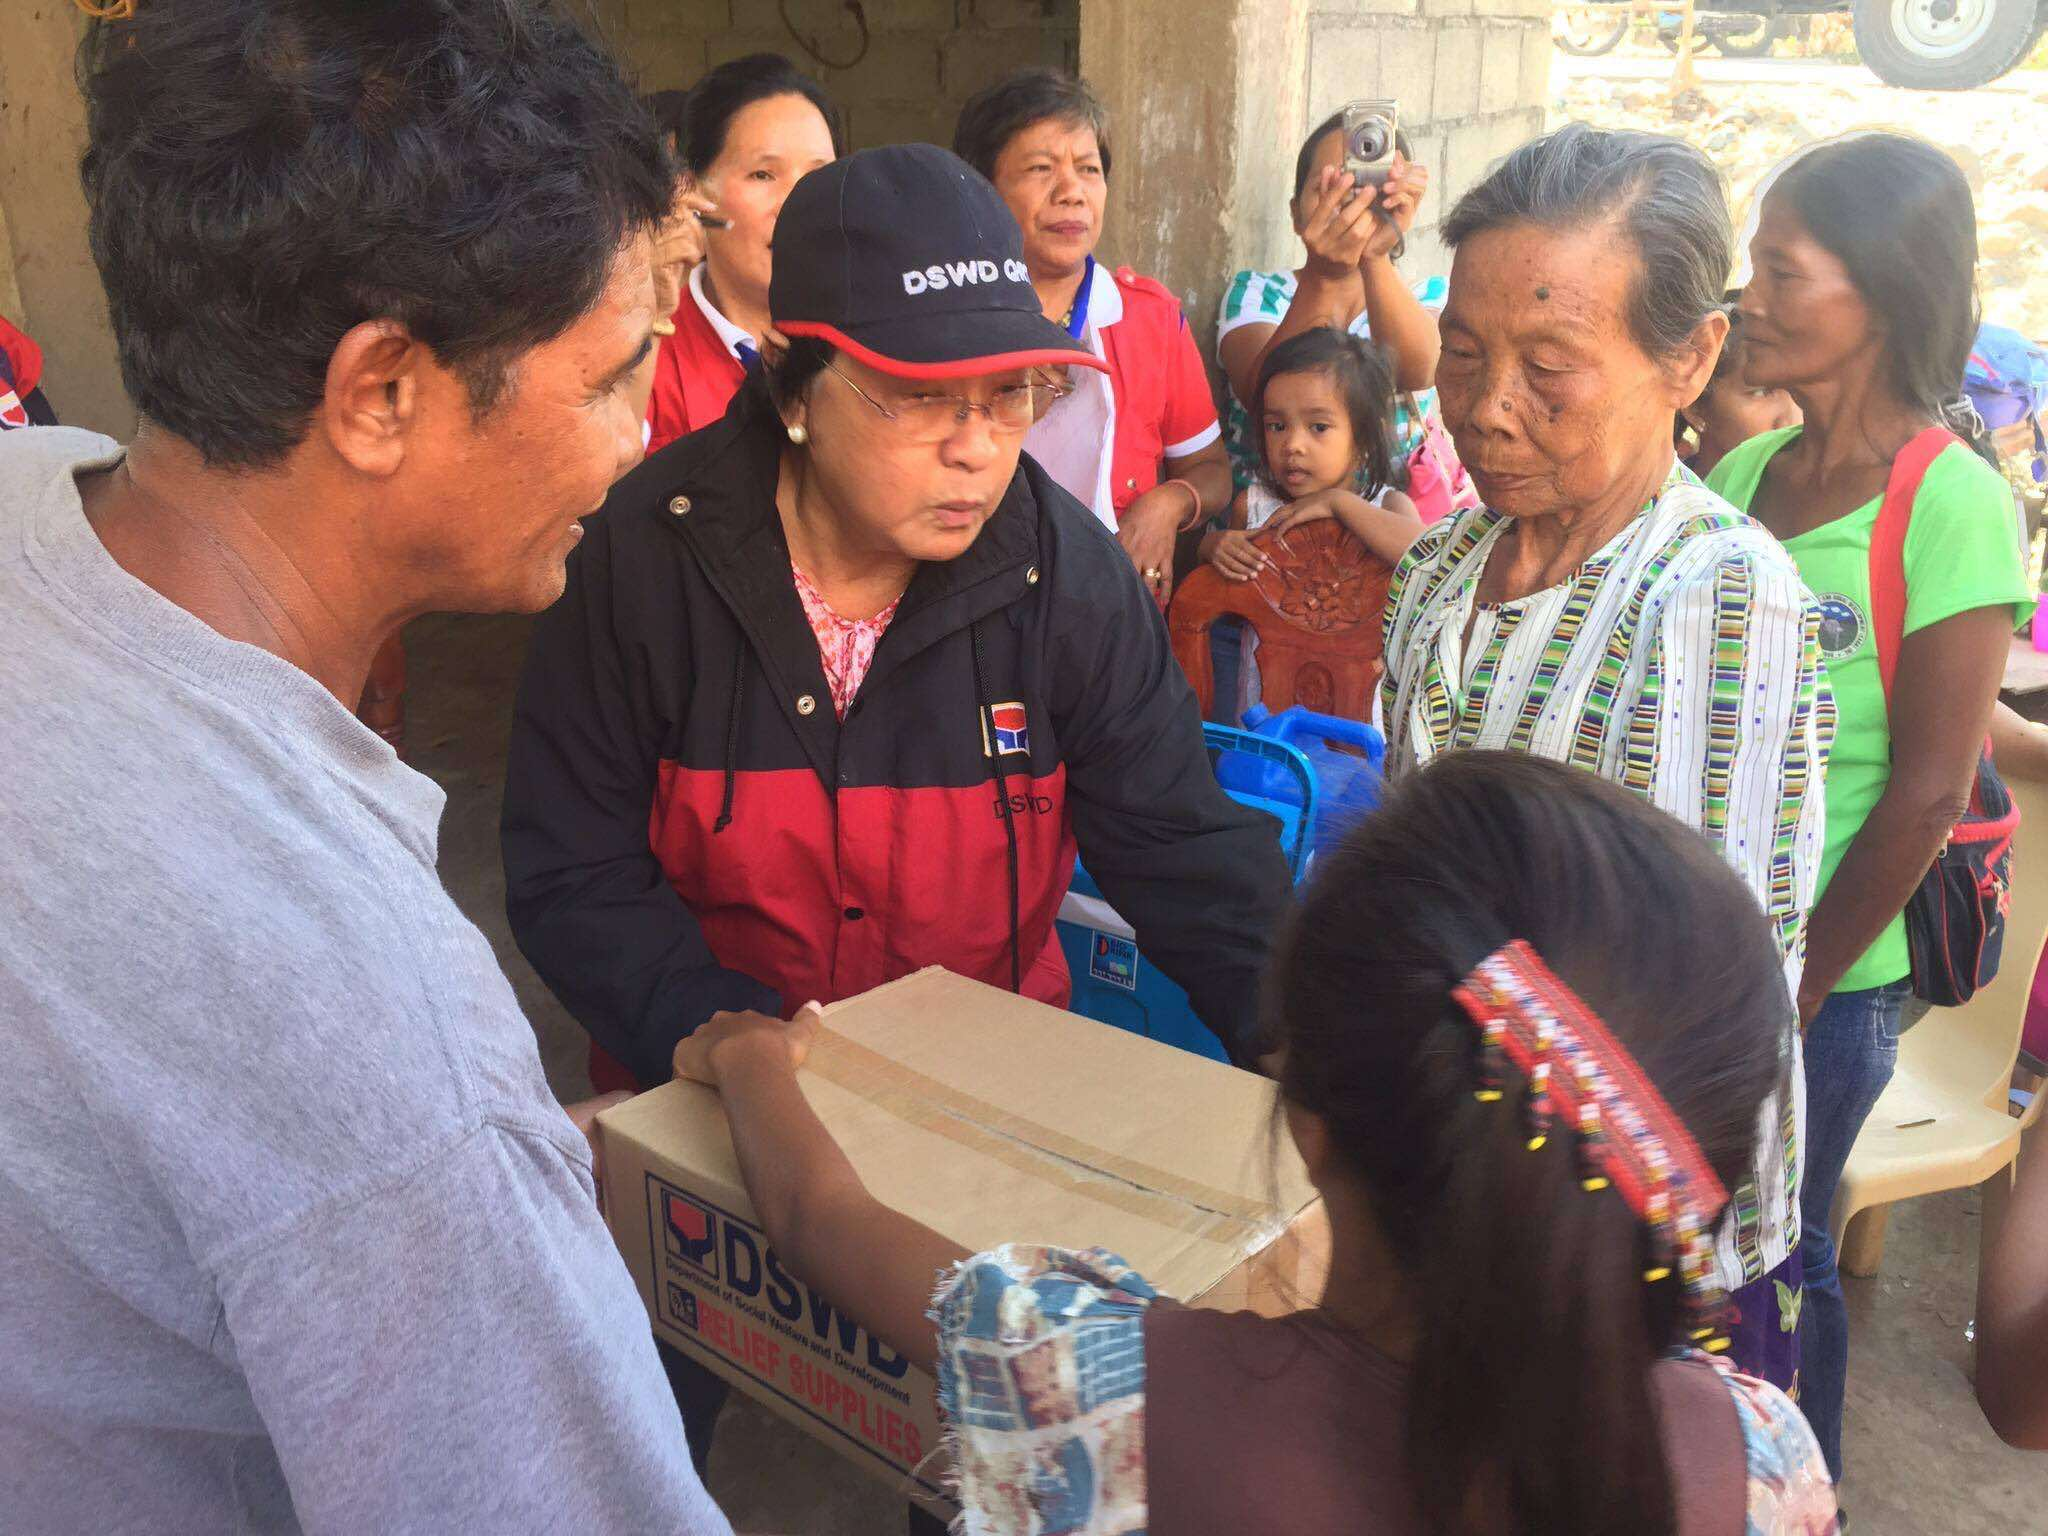 RELIEF DISTRIBUTION. DSWD Sec Judy Taguiwalo leads the distribution of relief goods in Kalinga after Super Typhoon Lawin hit the province. Photo courtesy of DSWD